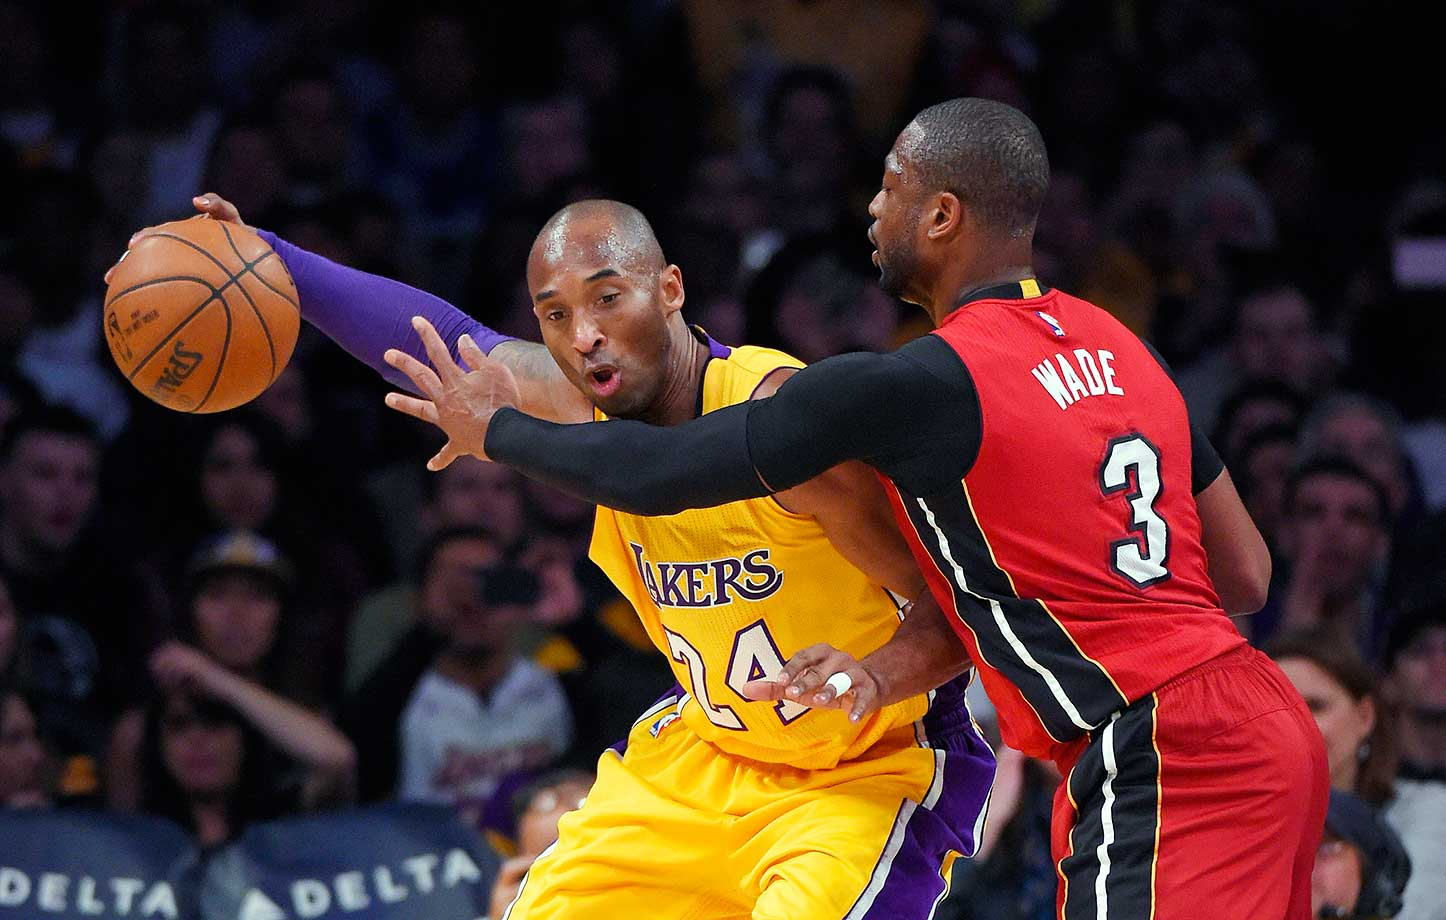 Miami Heat guard Dwyane Wade puts pressure on Lakers forward Kobe Bryant.